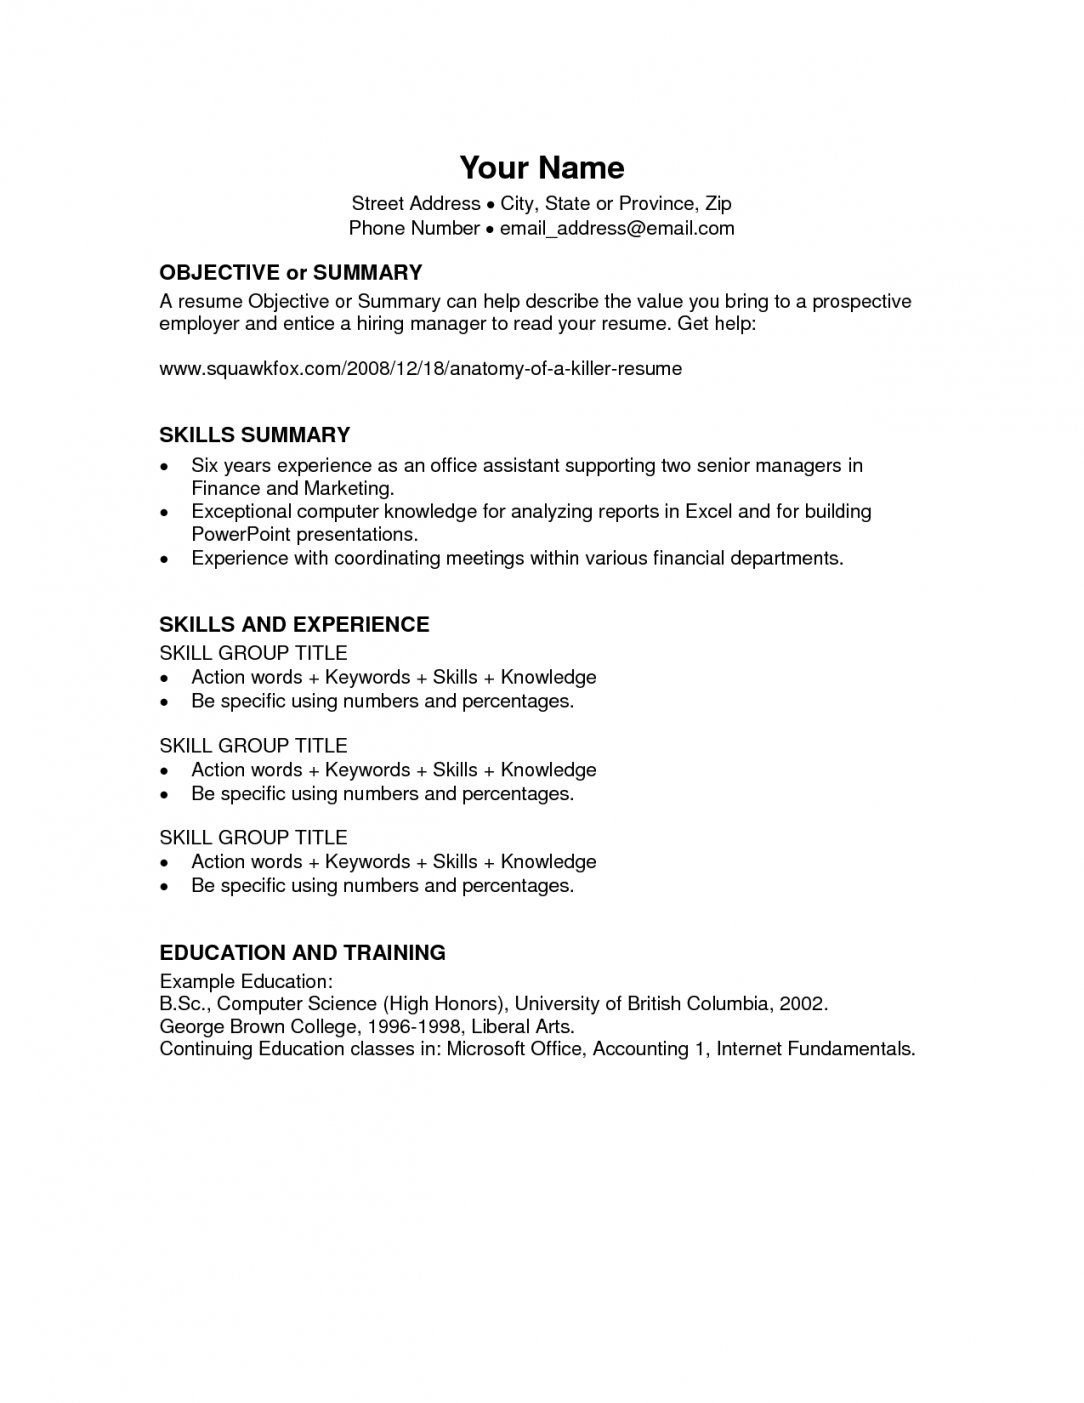 Killer Resume Templates Free - Resume examples, Resume templates, Resume template word, Resume template free, Good resume examples, Resume template professional - Free cv resume templates 495 to 501   Free CV Template dot Org american cv format download   Mini m